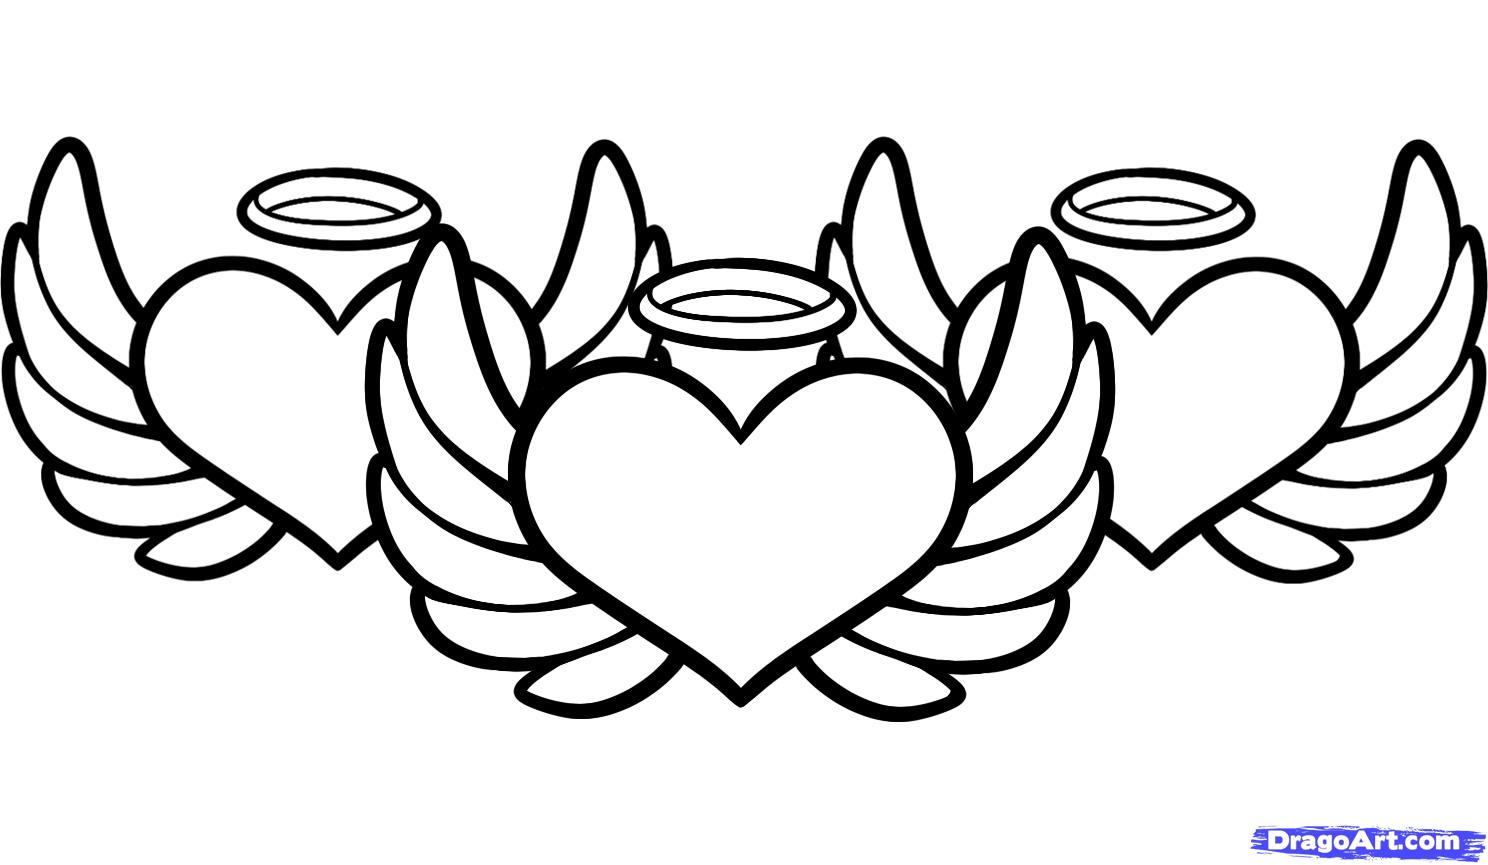 1488x865 Hearts With Wings Coloring Page Free Download